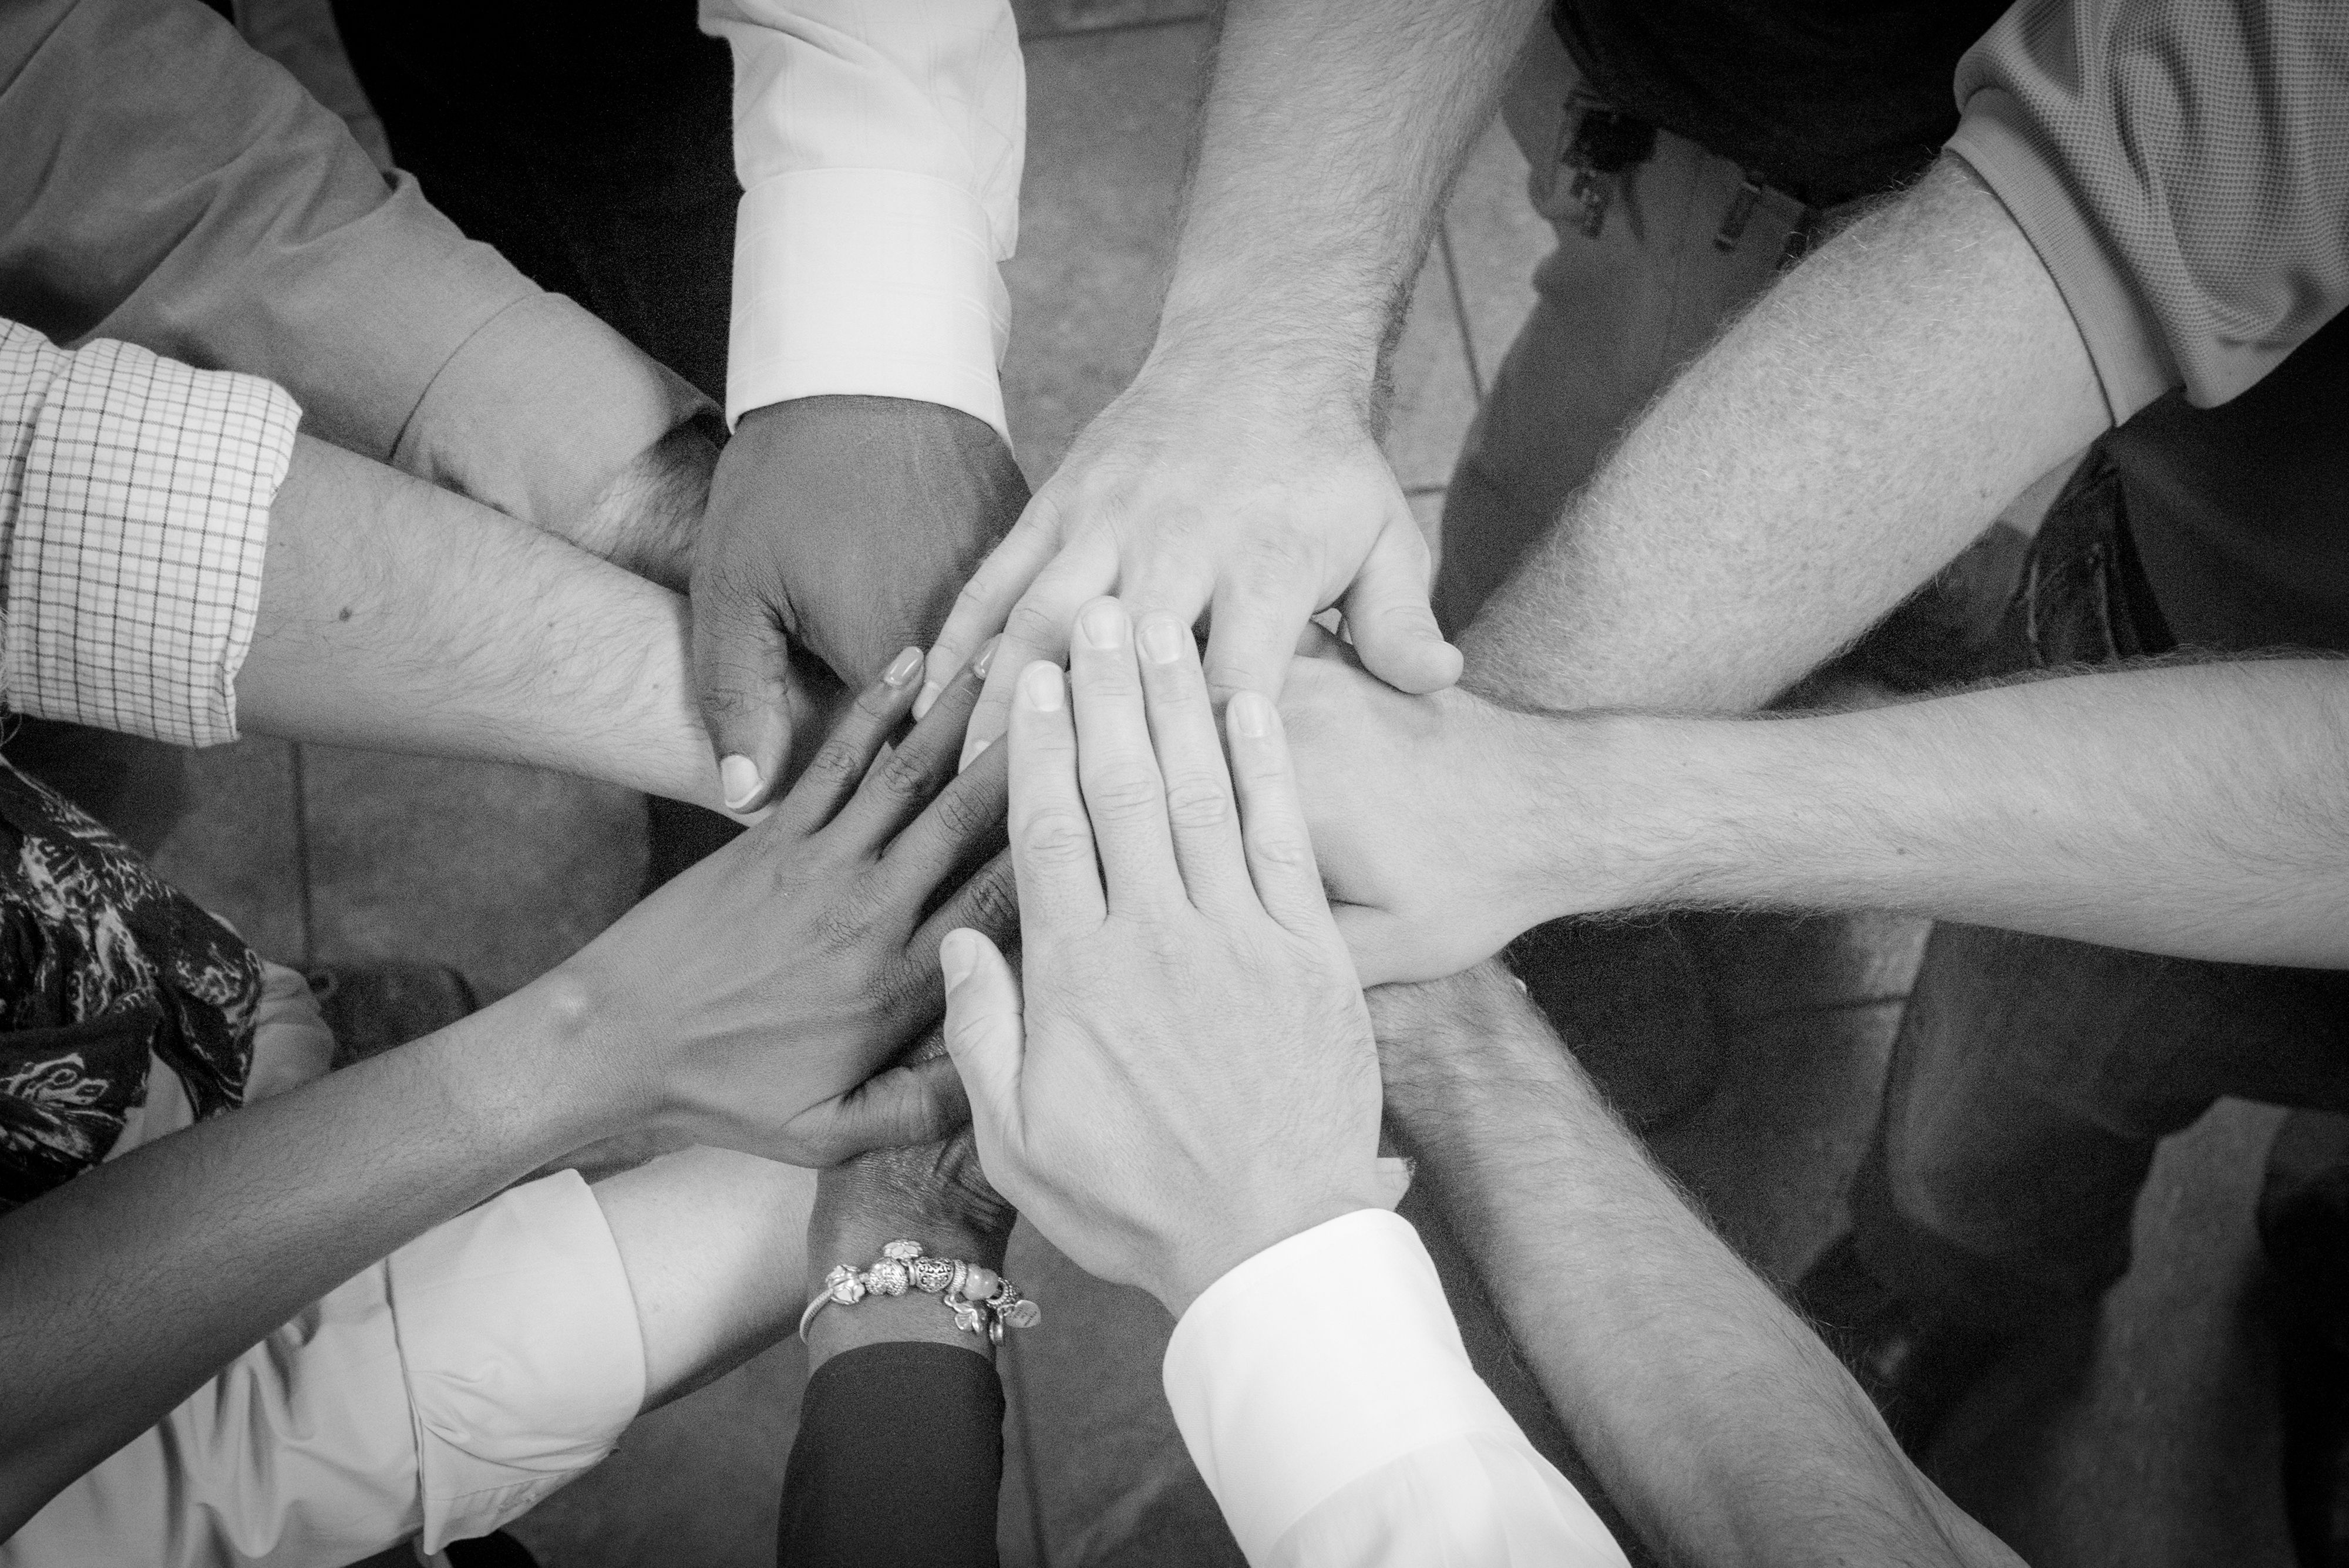 It is our business to enhance teamwork so that we may continue to exceed customer expectations.